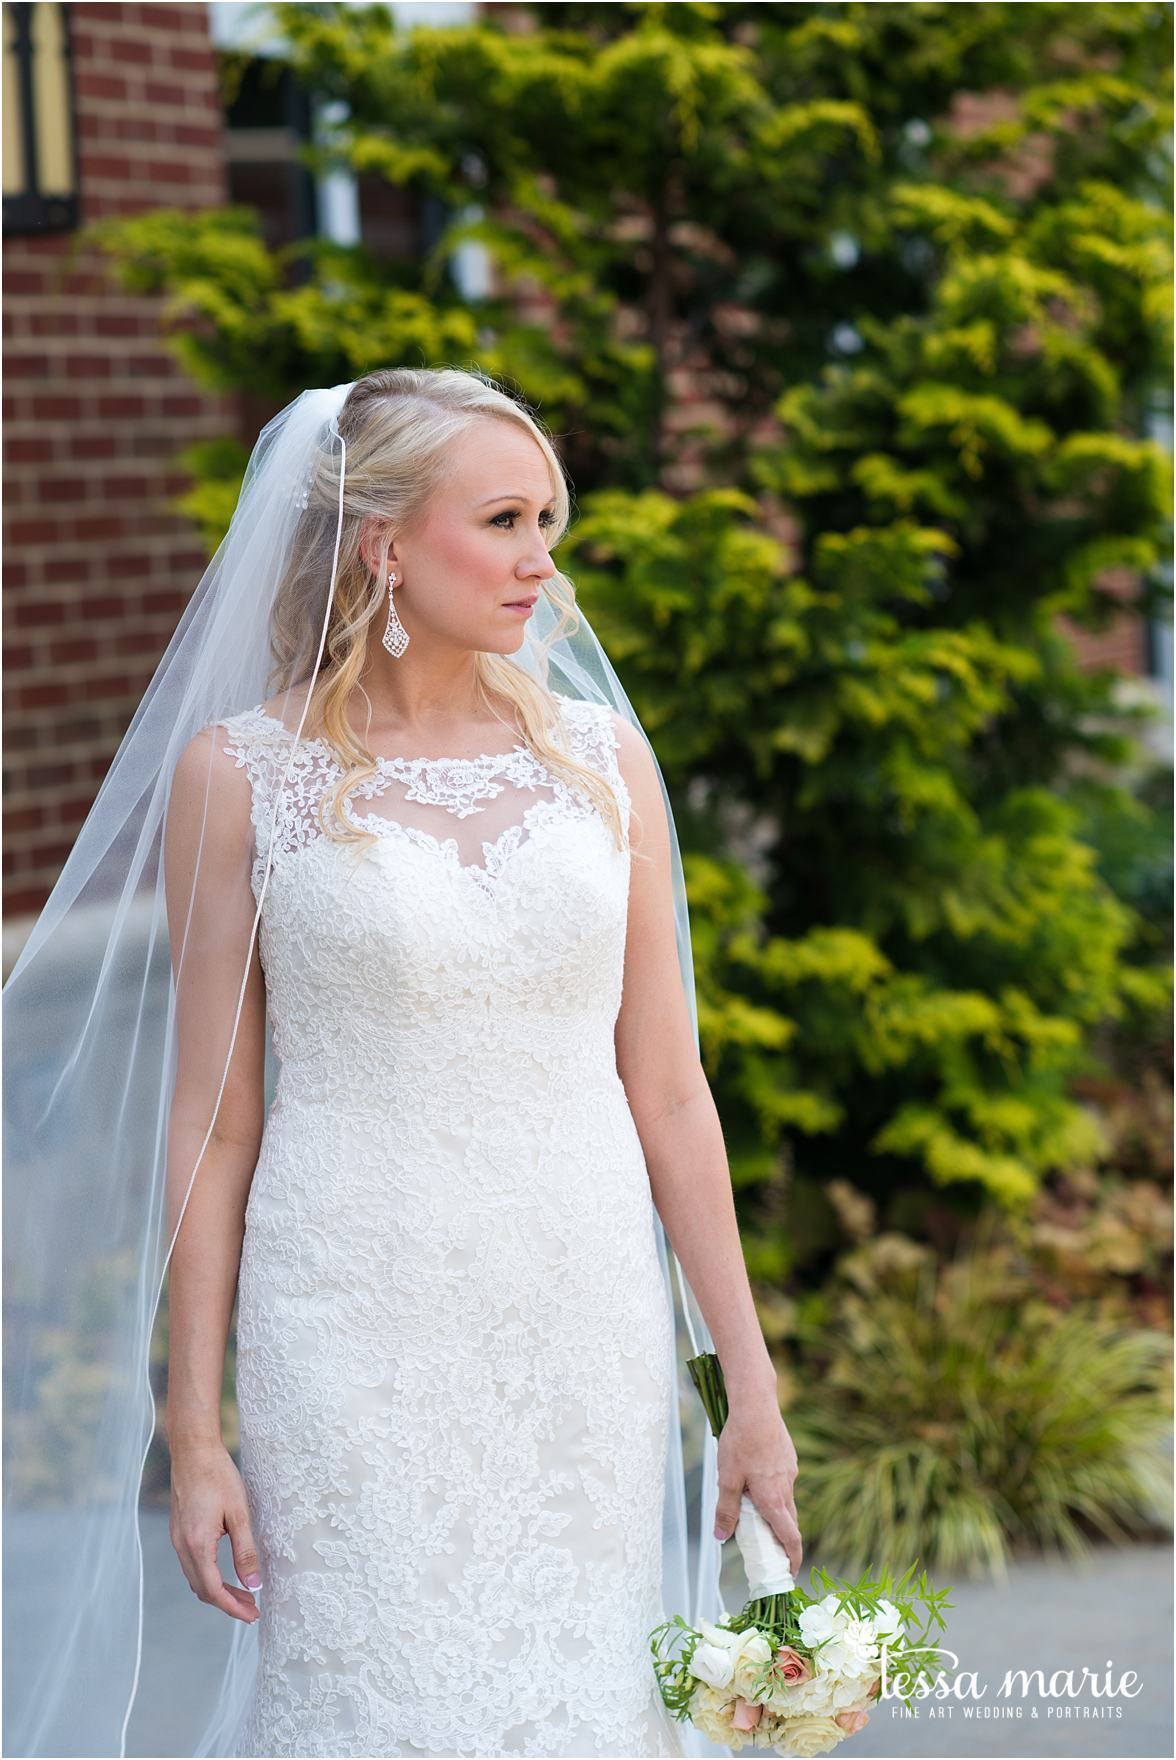 ivy_hall_Wedding_pictures_tessa_marie_weddings_0138